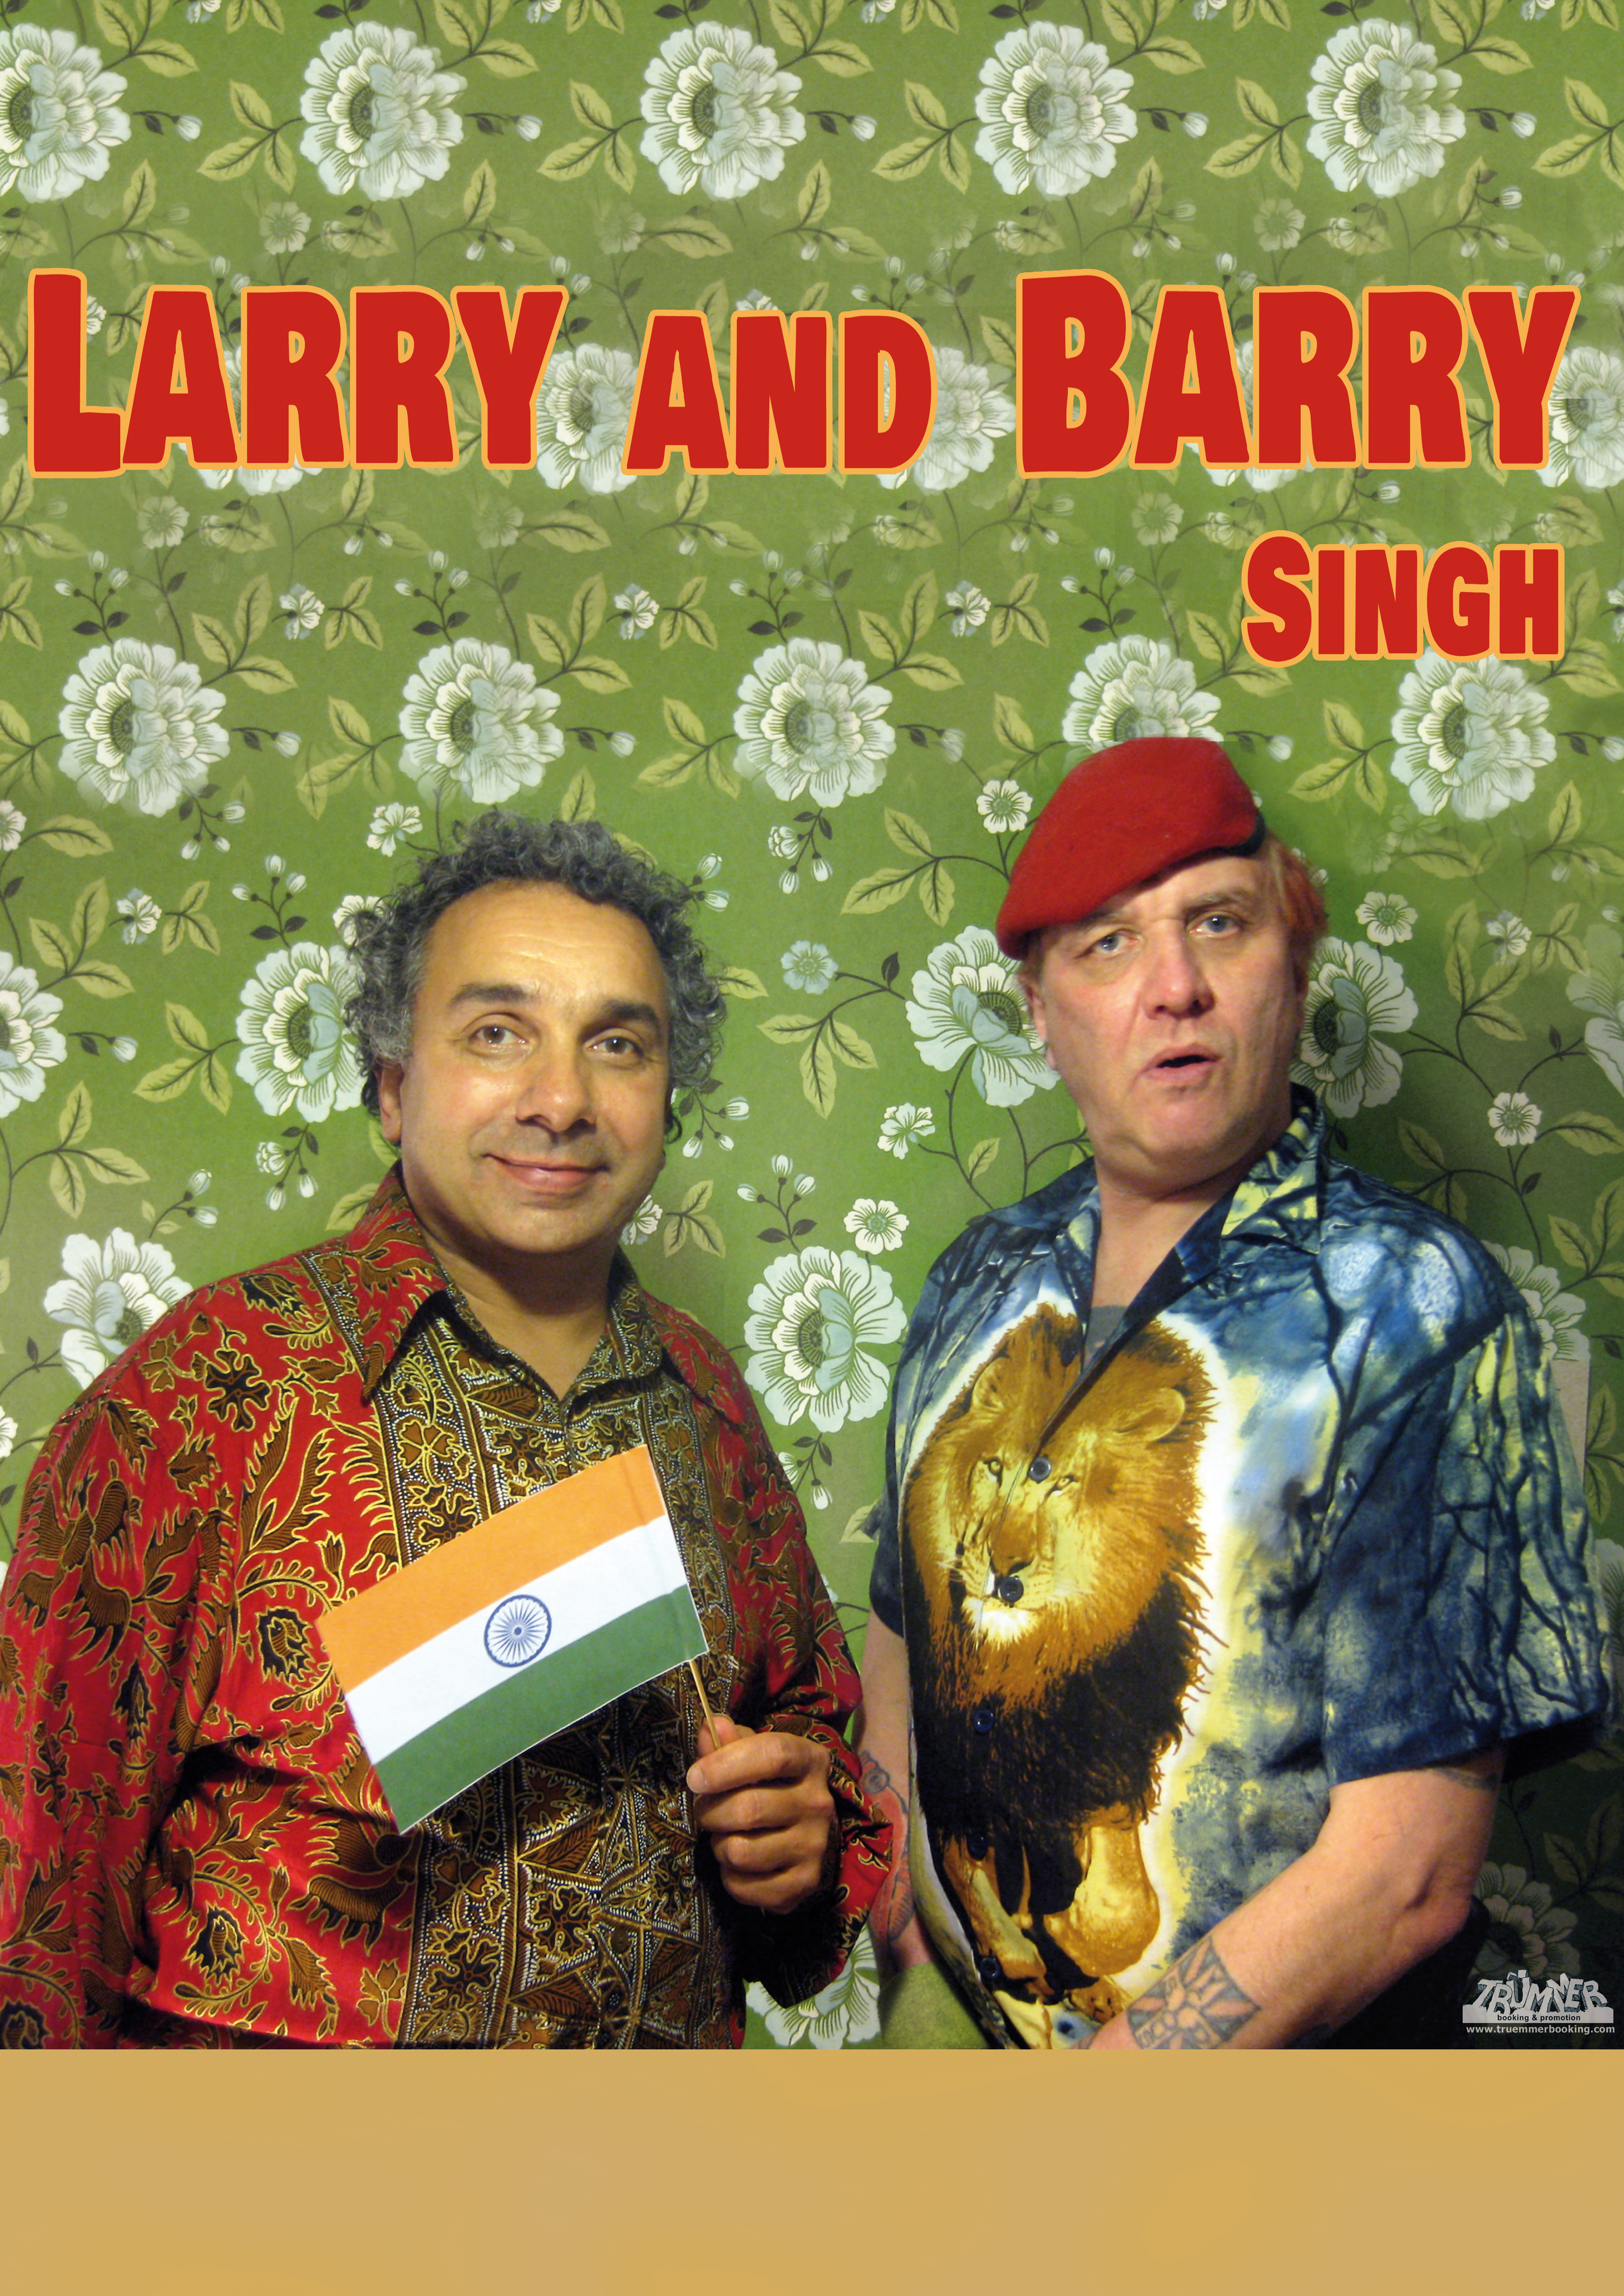 Larry_and_Barry_Singh-Poster2020_A3_RGB.jpg